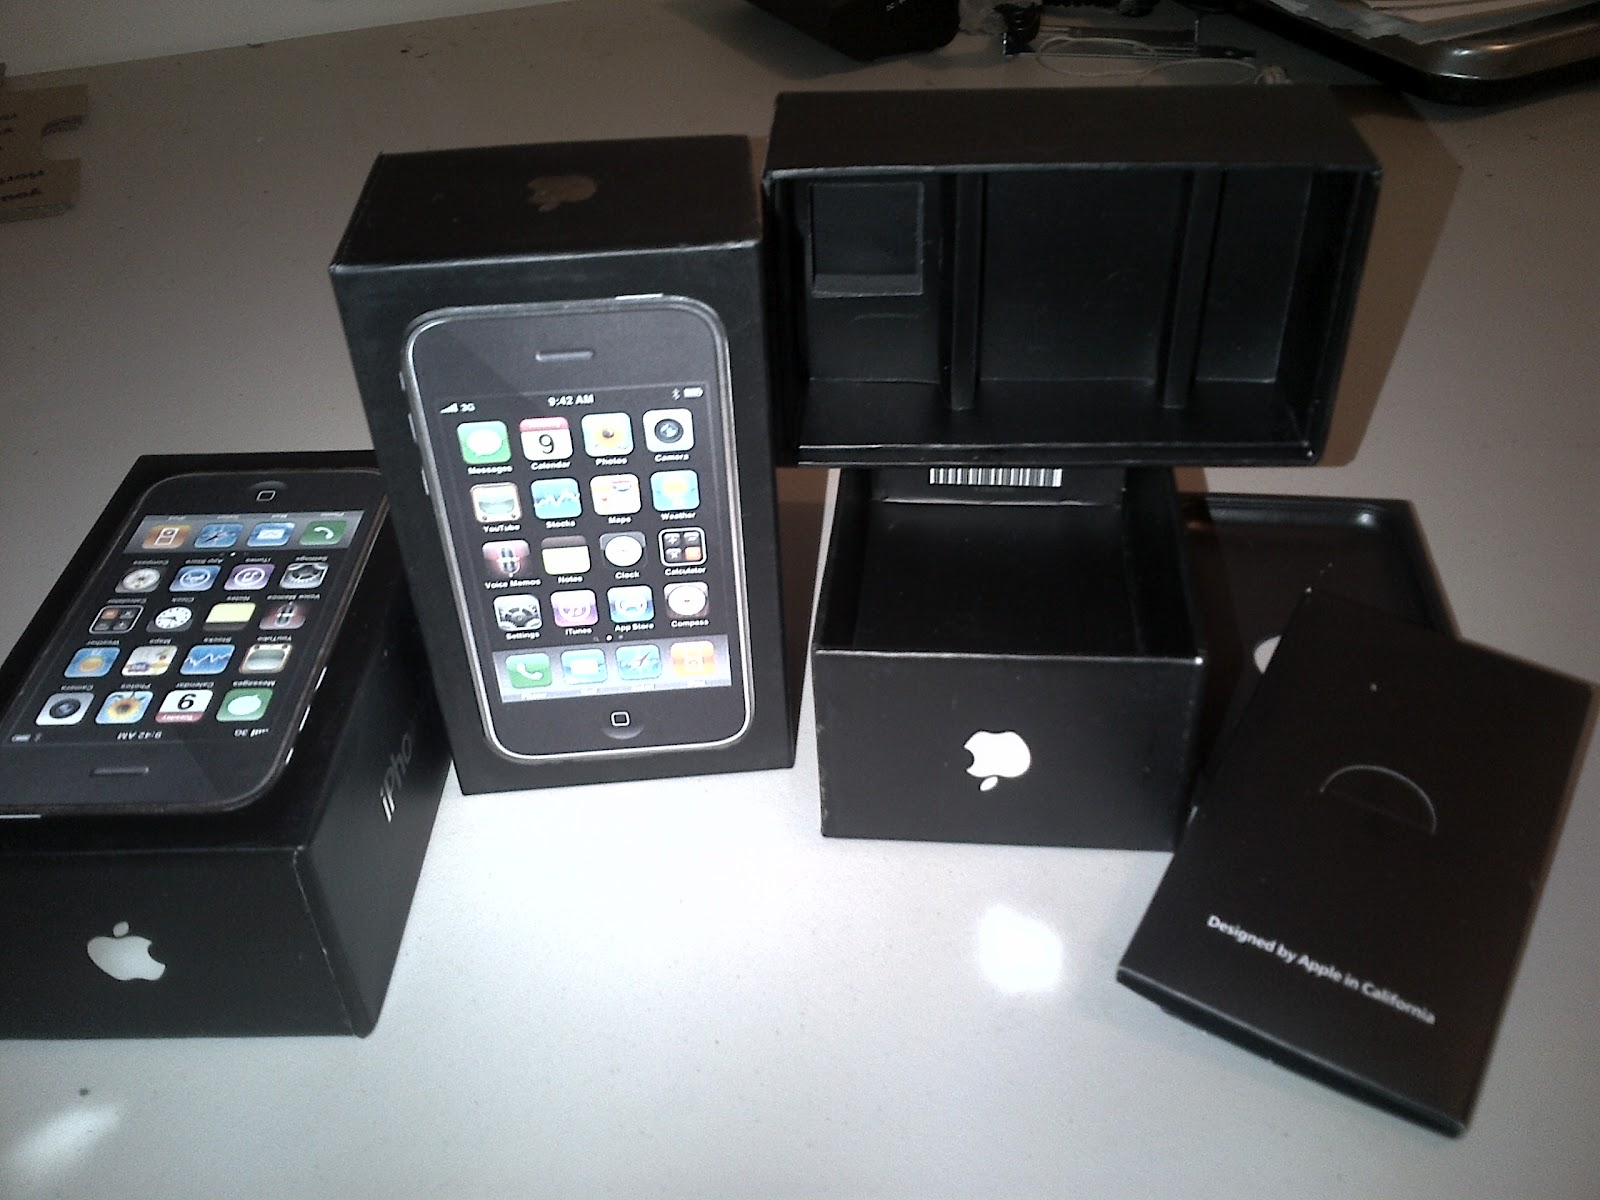 Samsung Mobile I9300 of Samsung Galaxy S III Samsung...  Contact details.